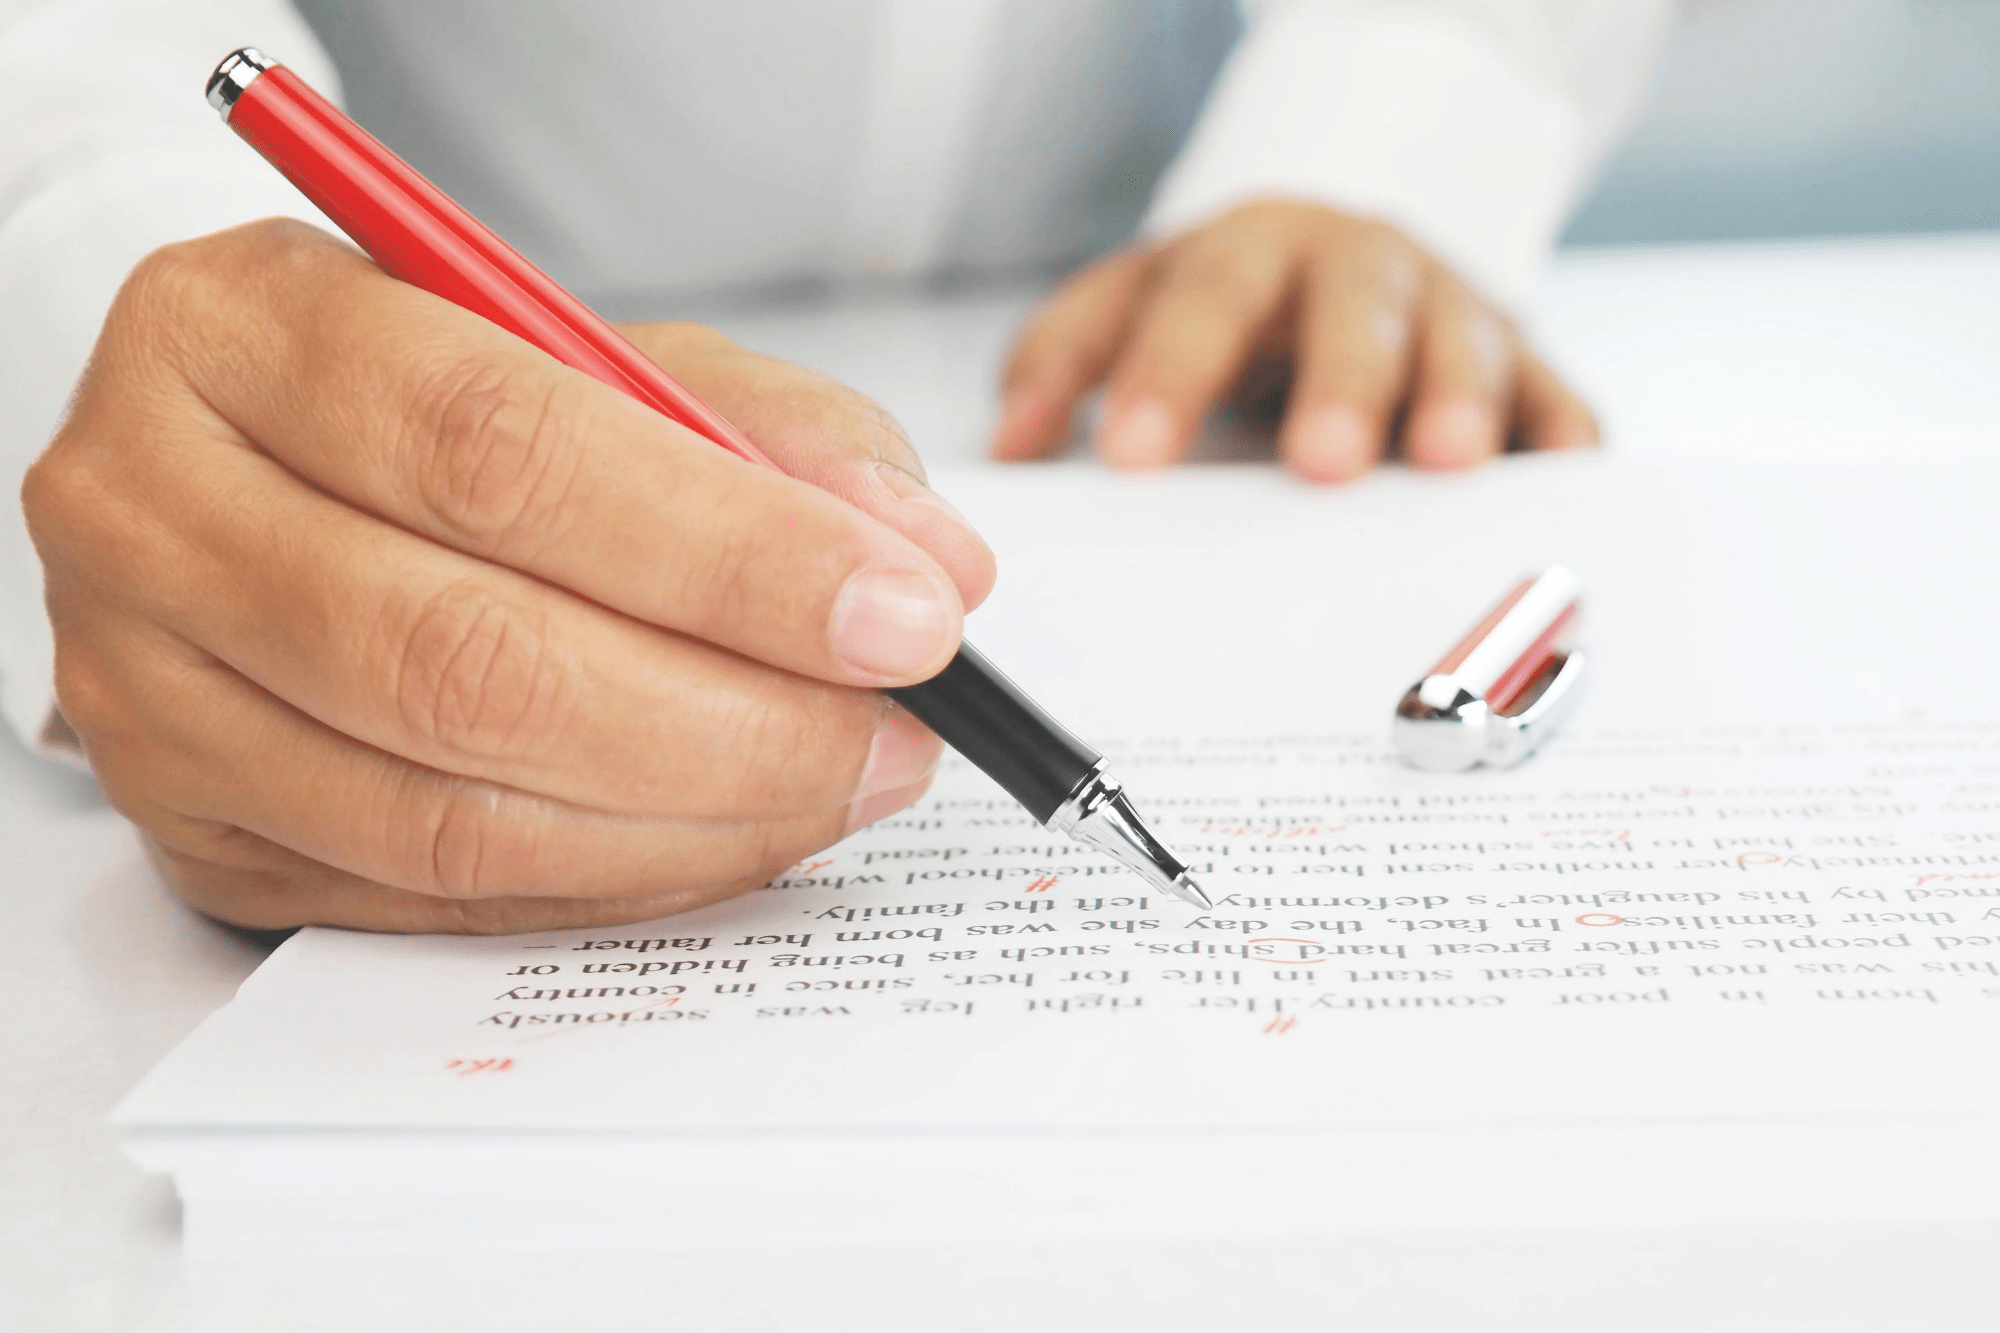 Person marking paper with red pen